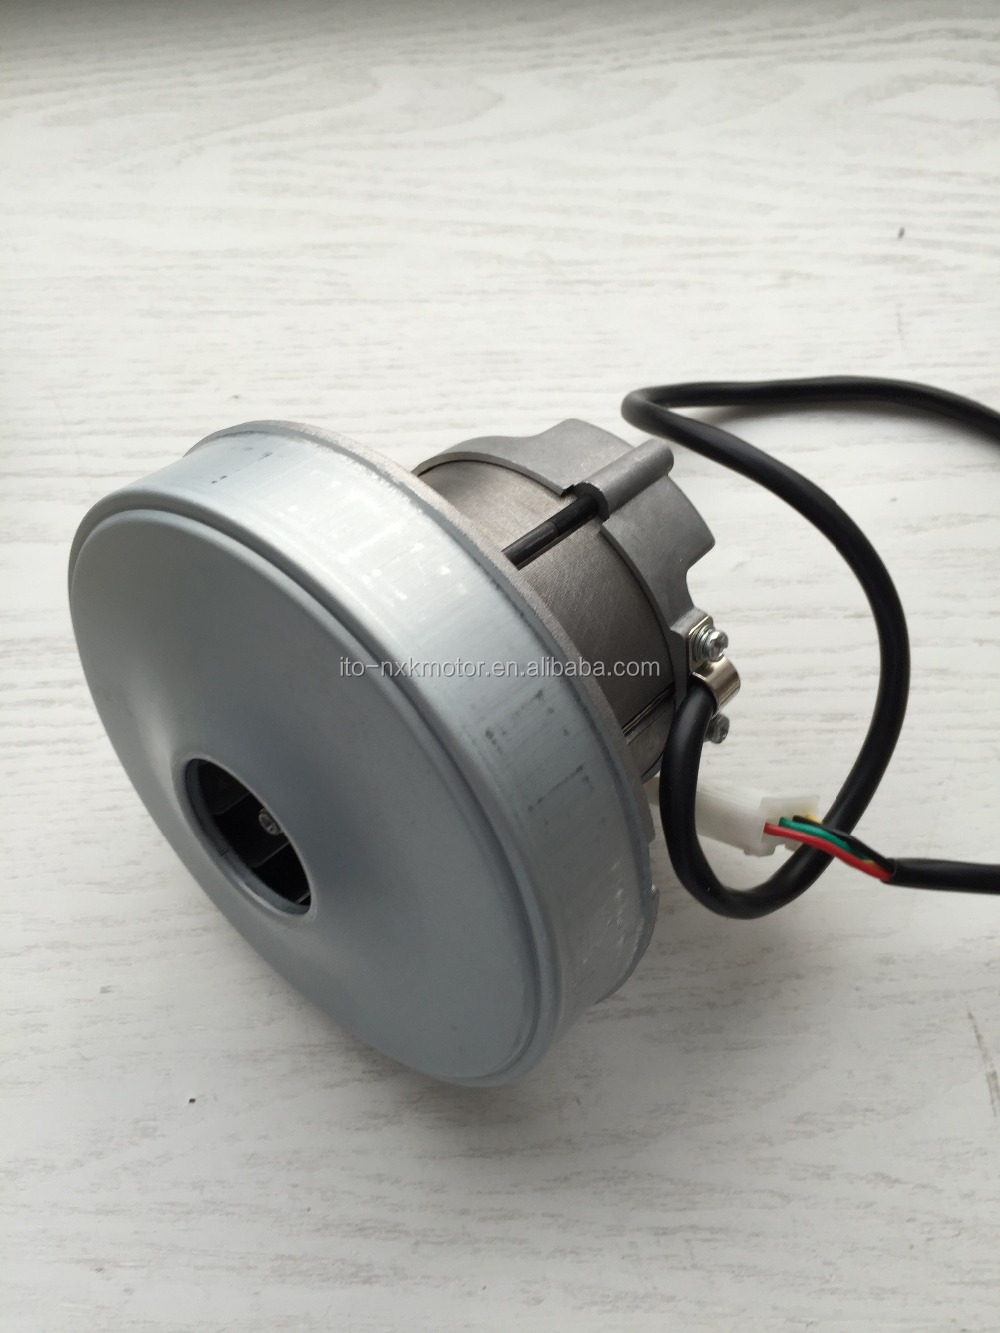 Alibaba China Supplier Dropshipper Motor Electrio Motor For Vacuum Cleaner Buy Electrio Motor